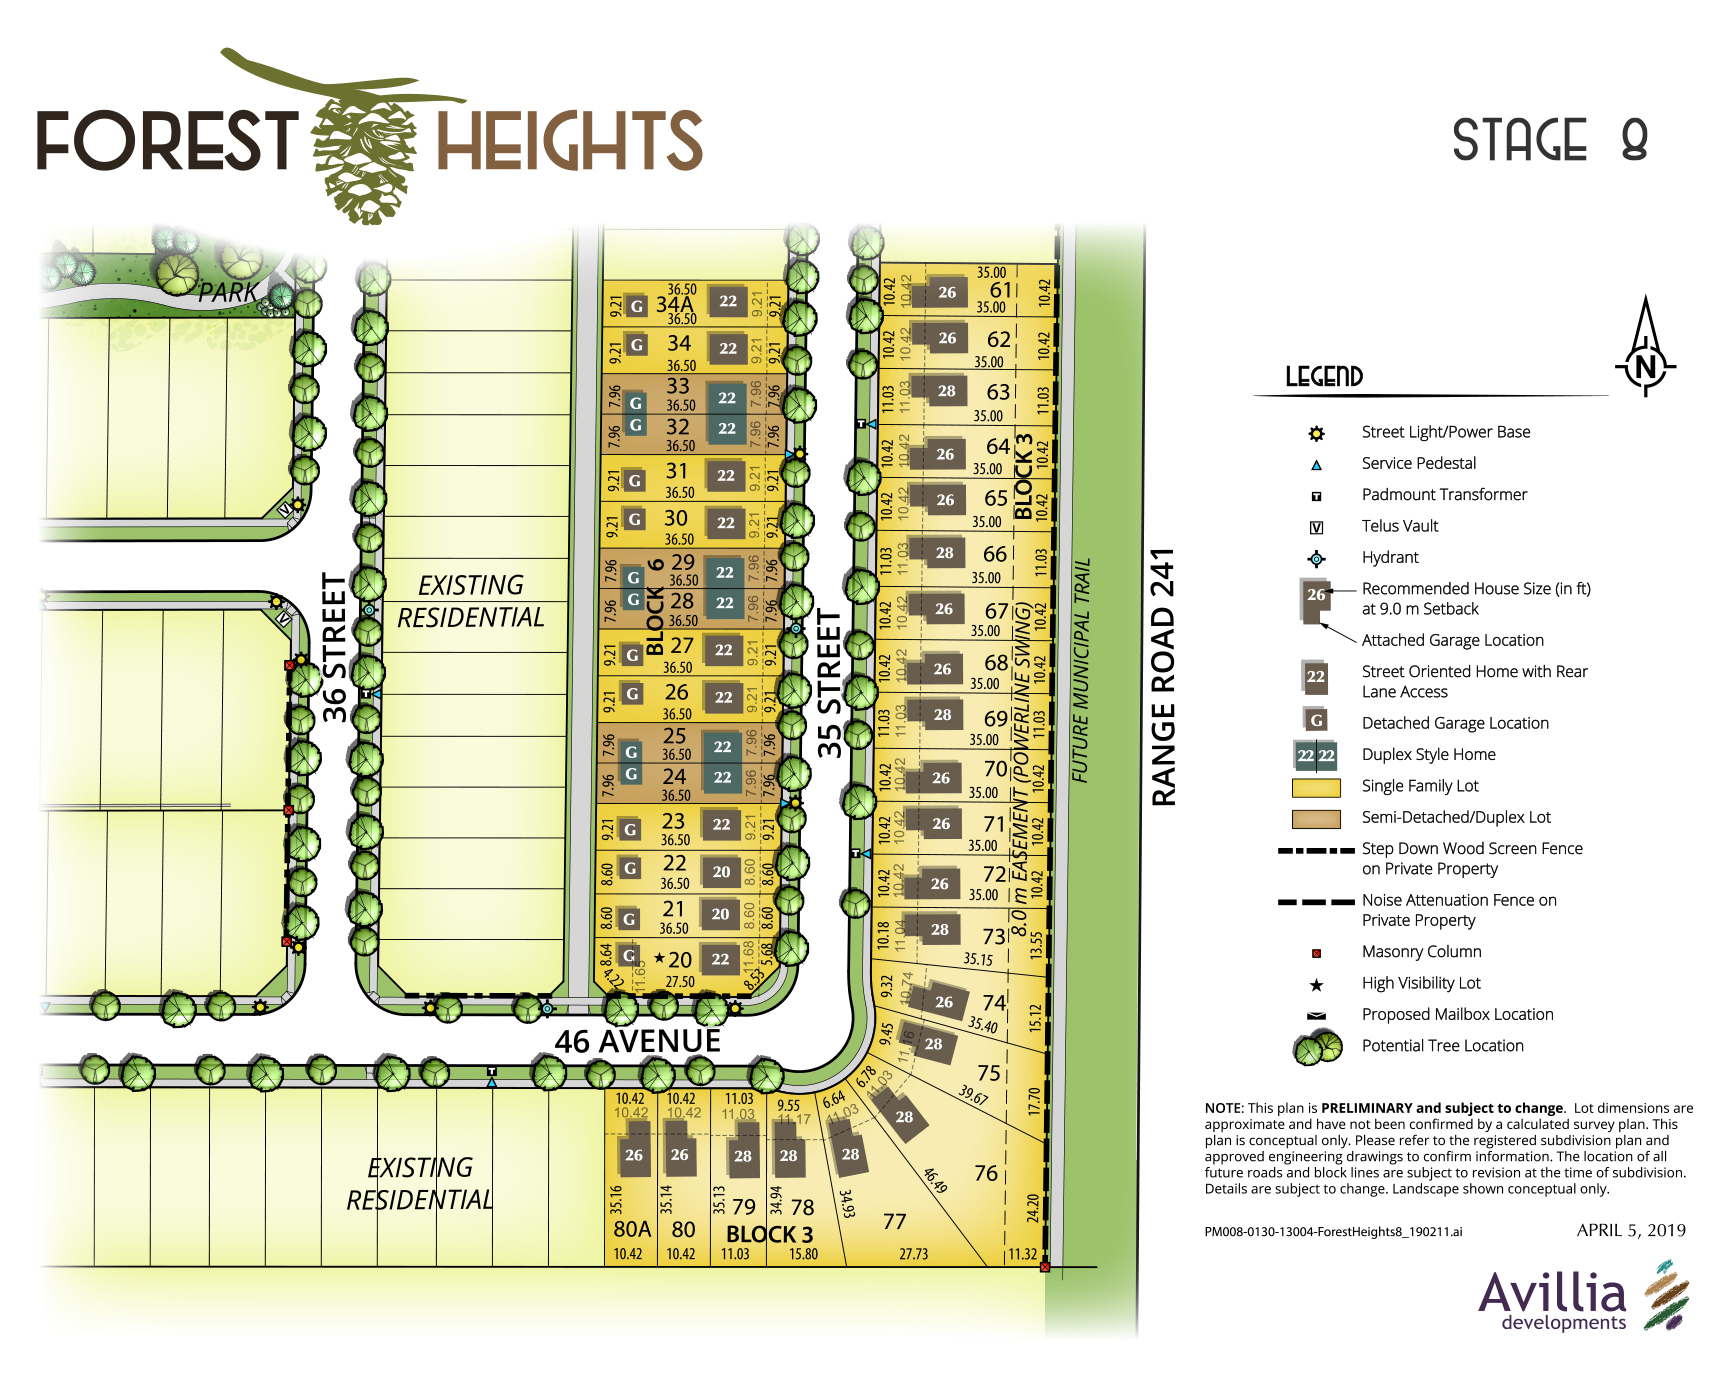 Forest Heights – Stage 8